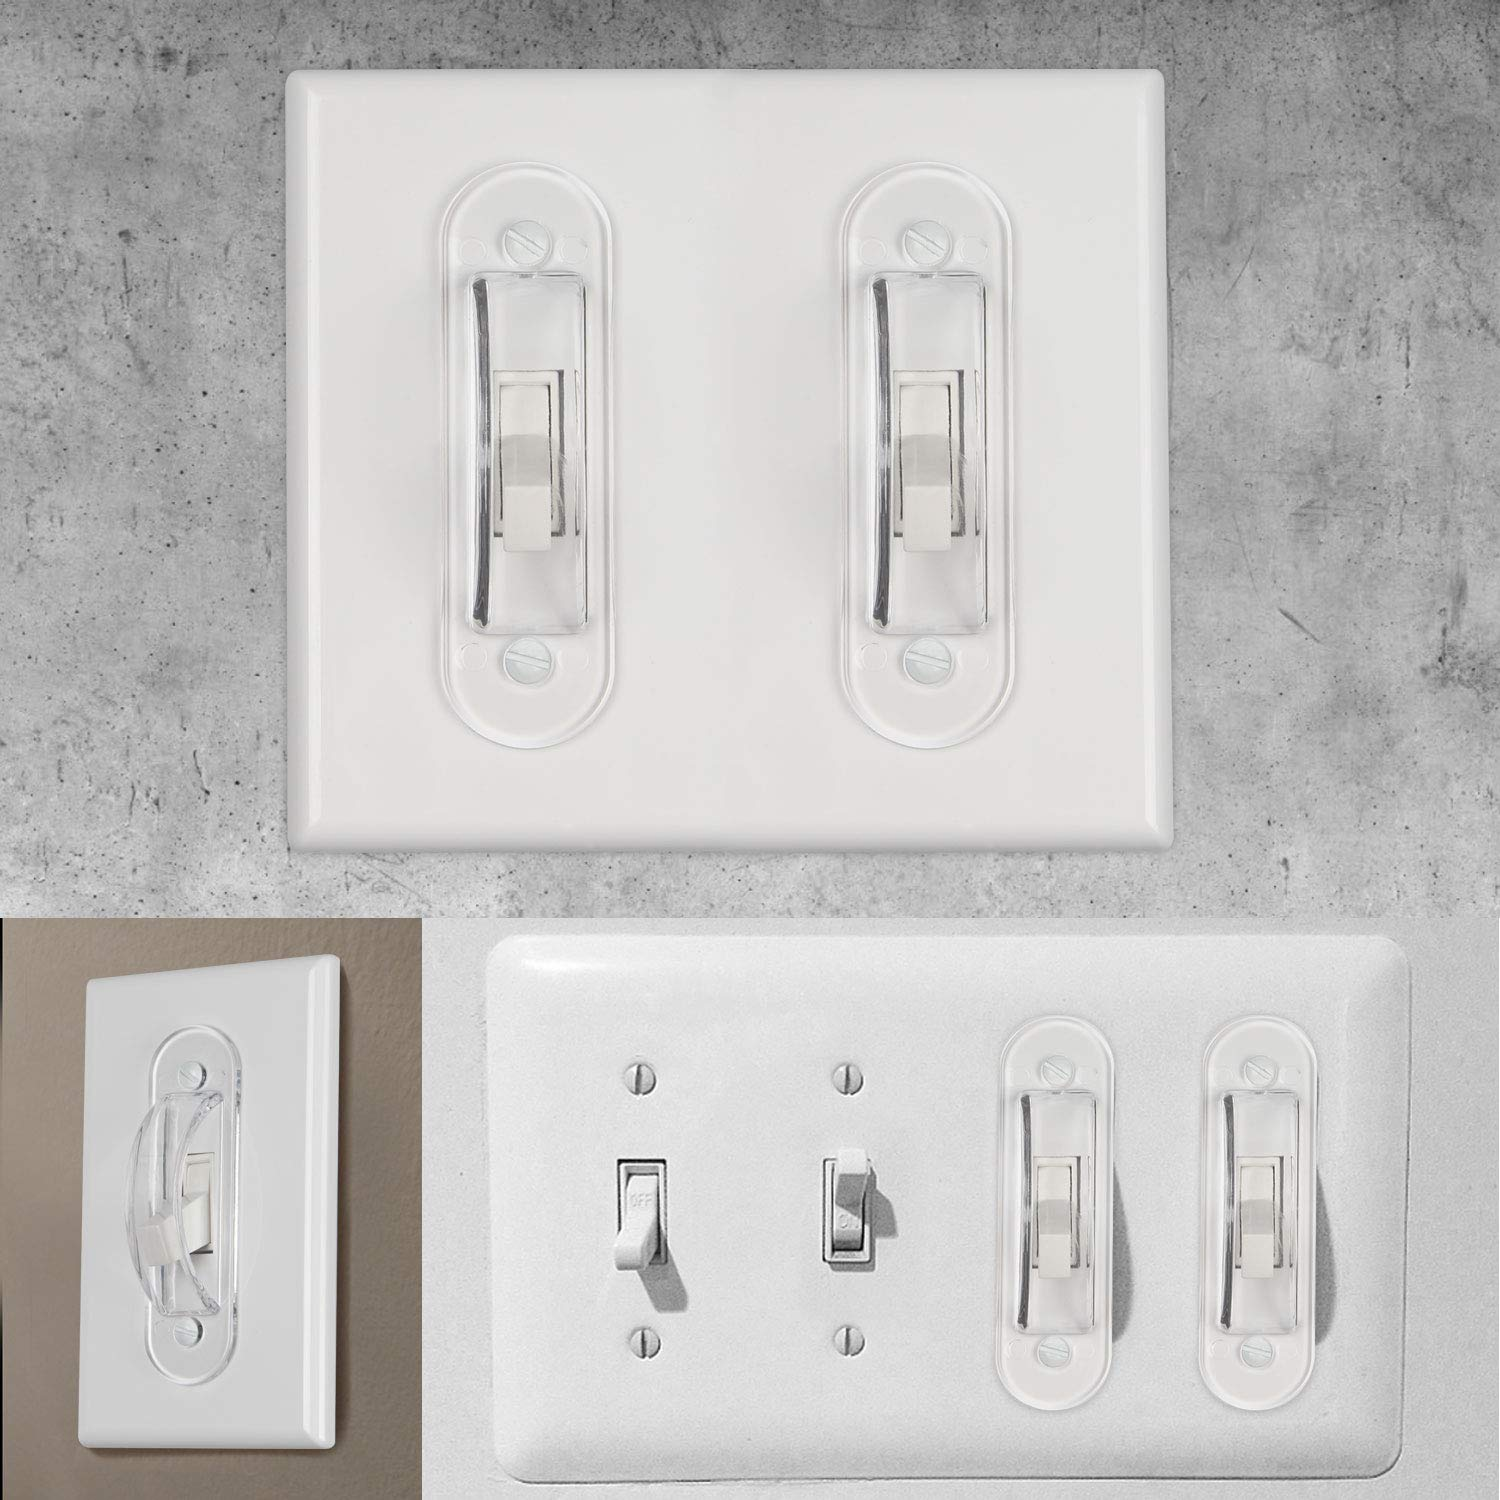 Lisol Wall Switch Guards Plate Covers Child Safety Security Home Decor Keeps Light Switch ON Or Off Prevent Accidental Device Turn On or Off Clear 4 Pack